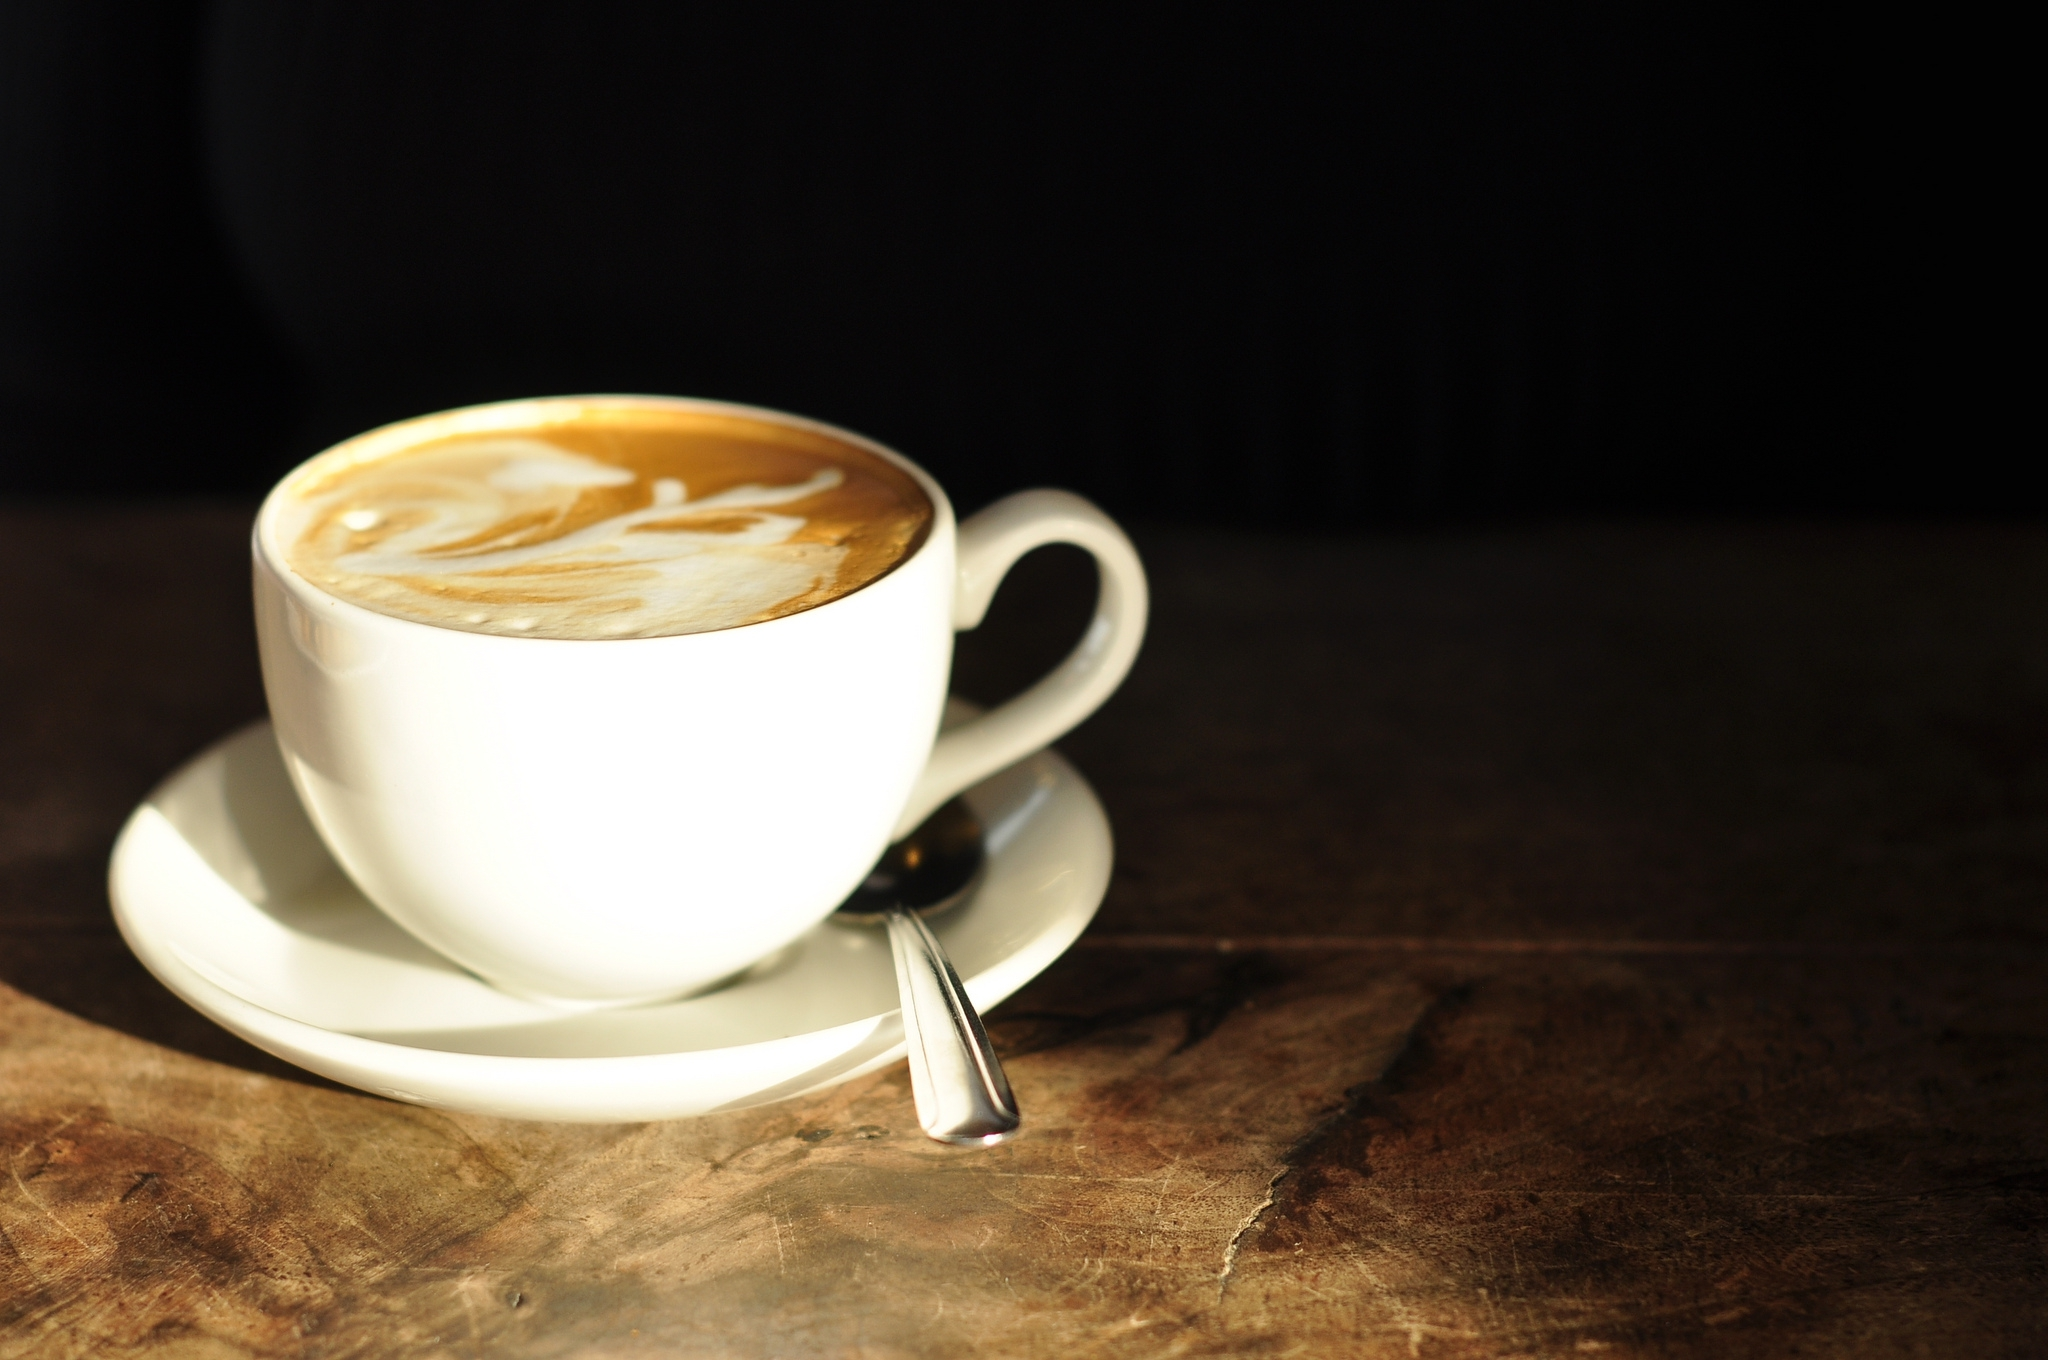 Cup Of Coffee Images: Coffee Cup Wallpaper Backgrounds